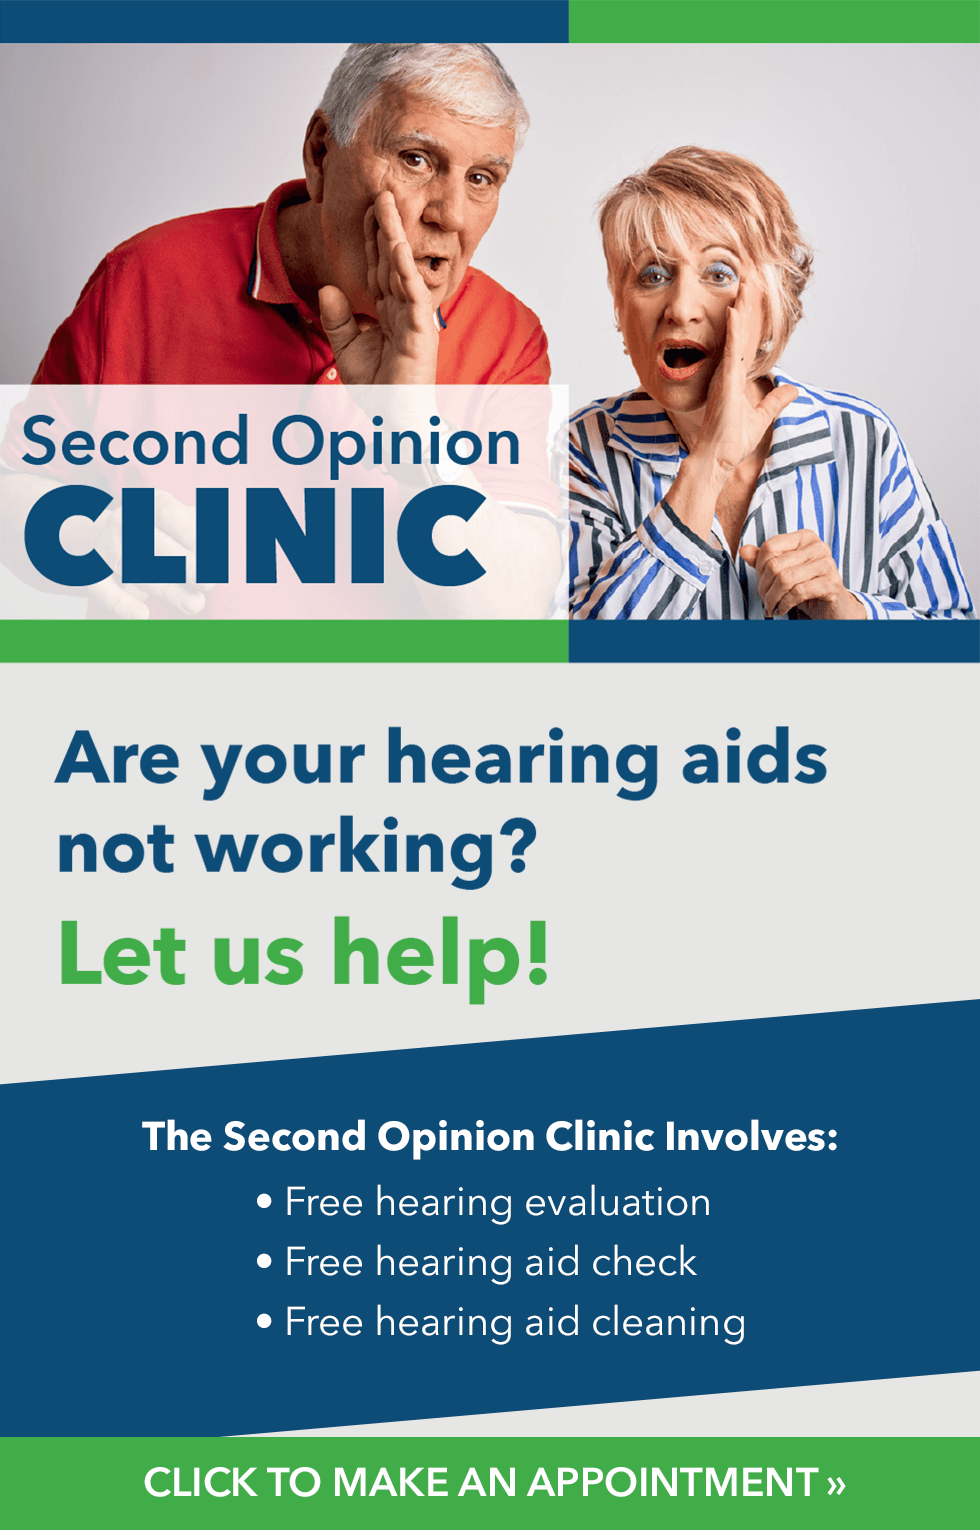 Second Opinion Clinic